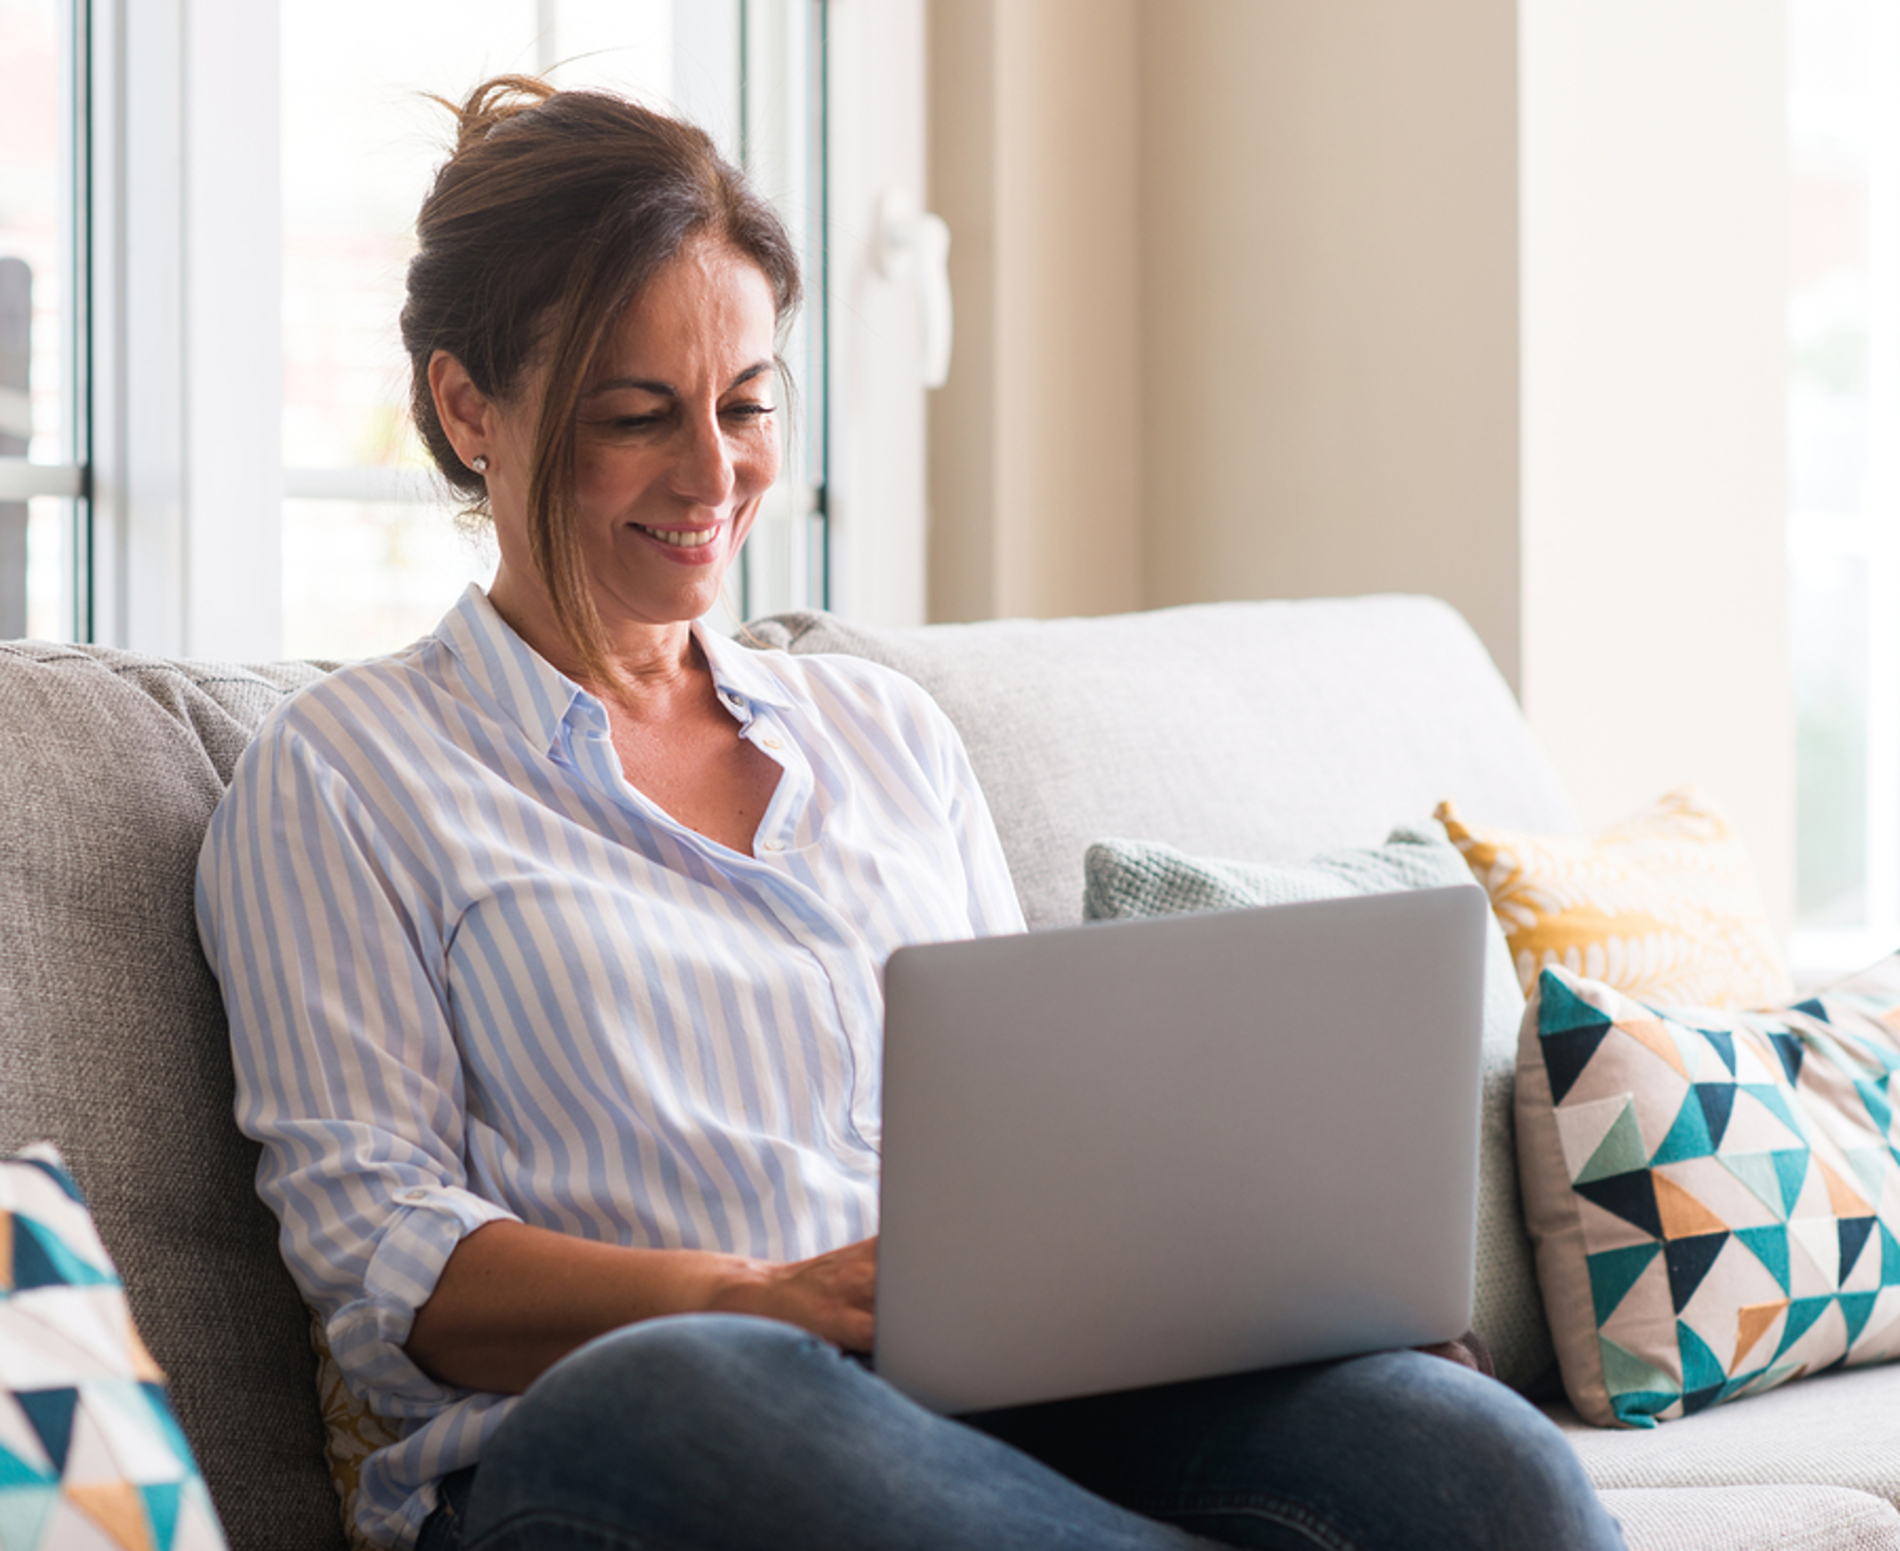 Woman sitting on a couch with her laptop computer.